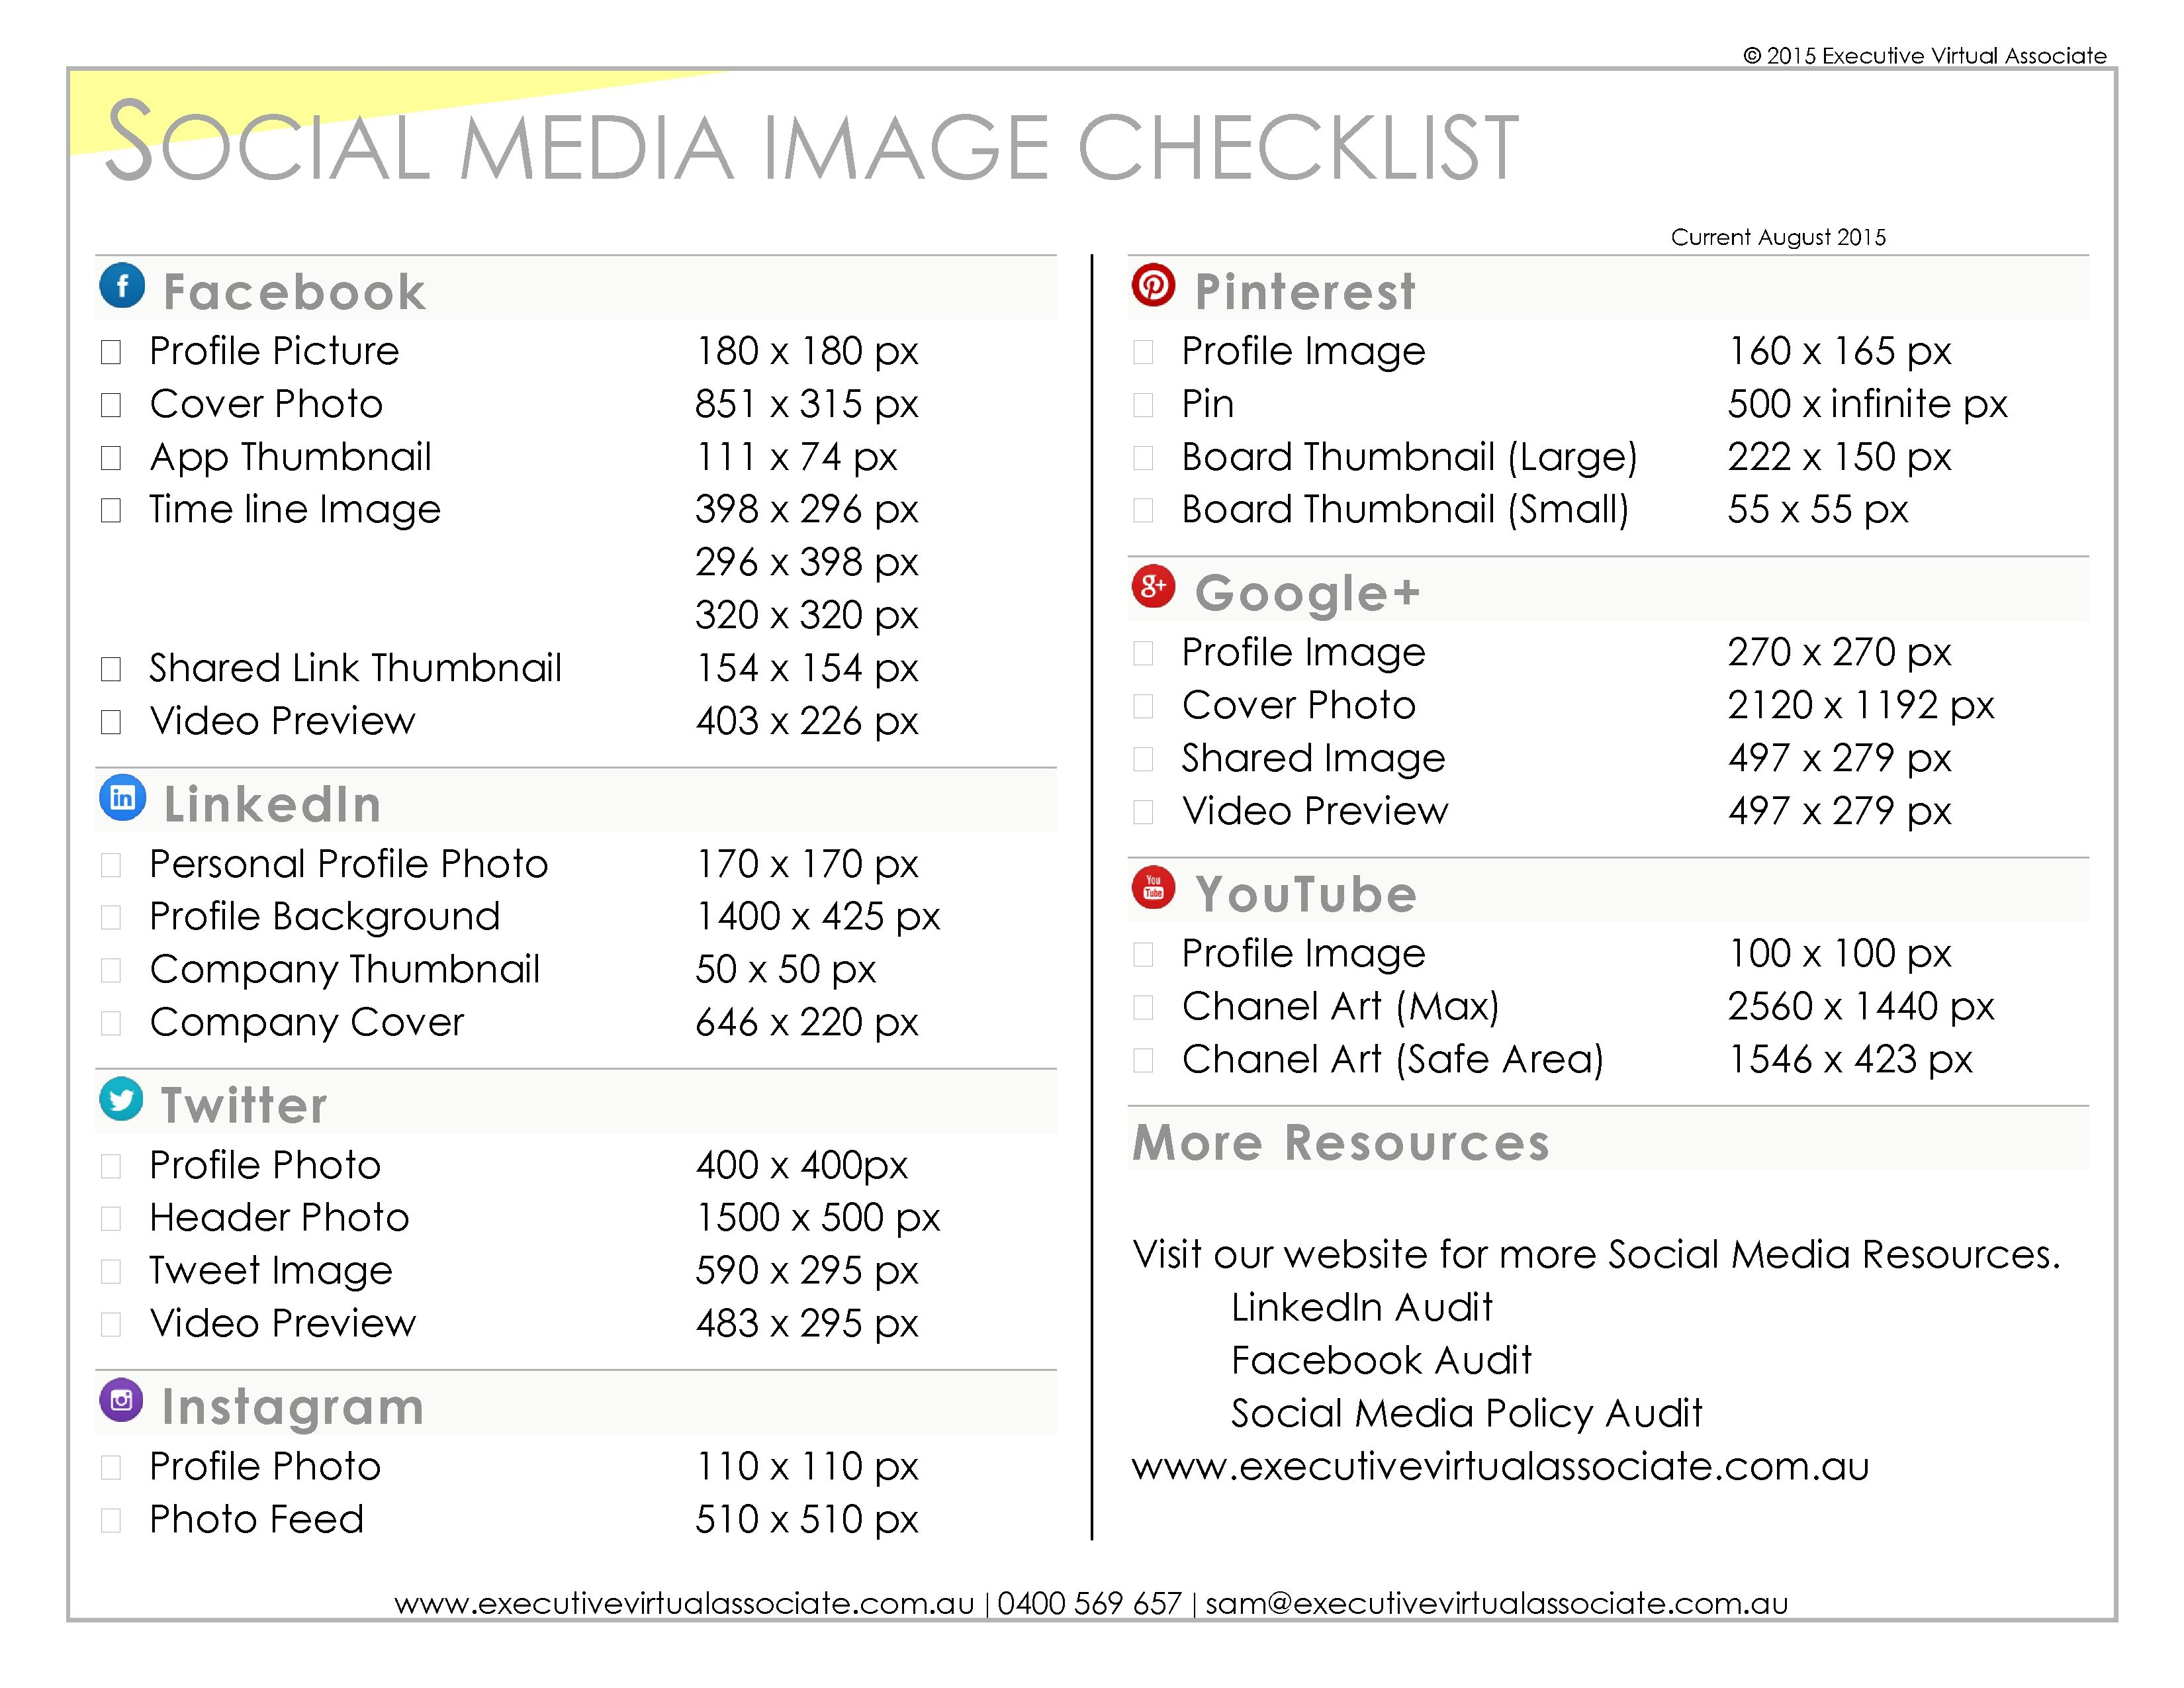 Social Media Image Checklists - helping you define the optimum image